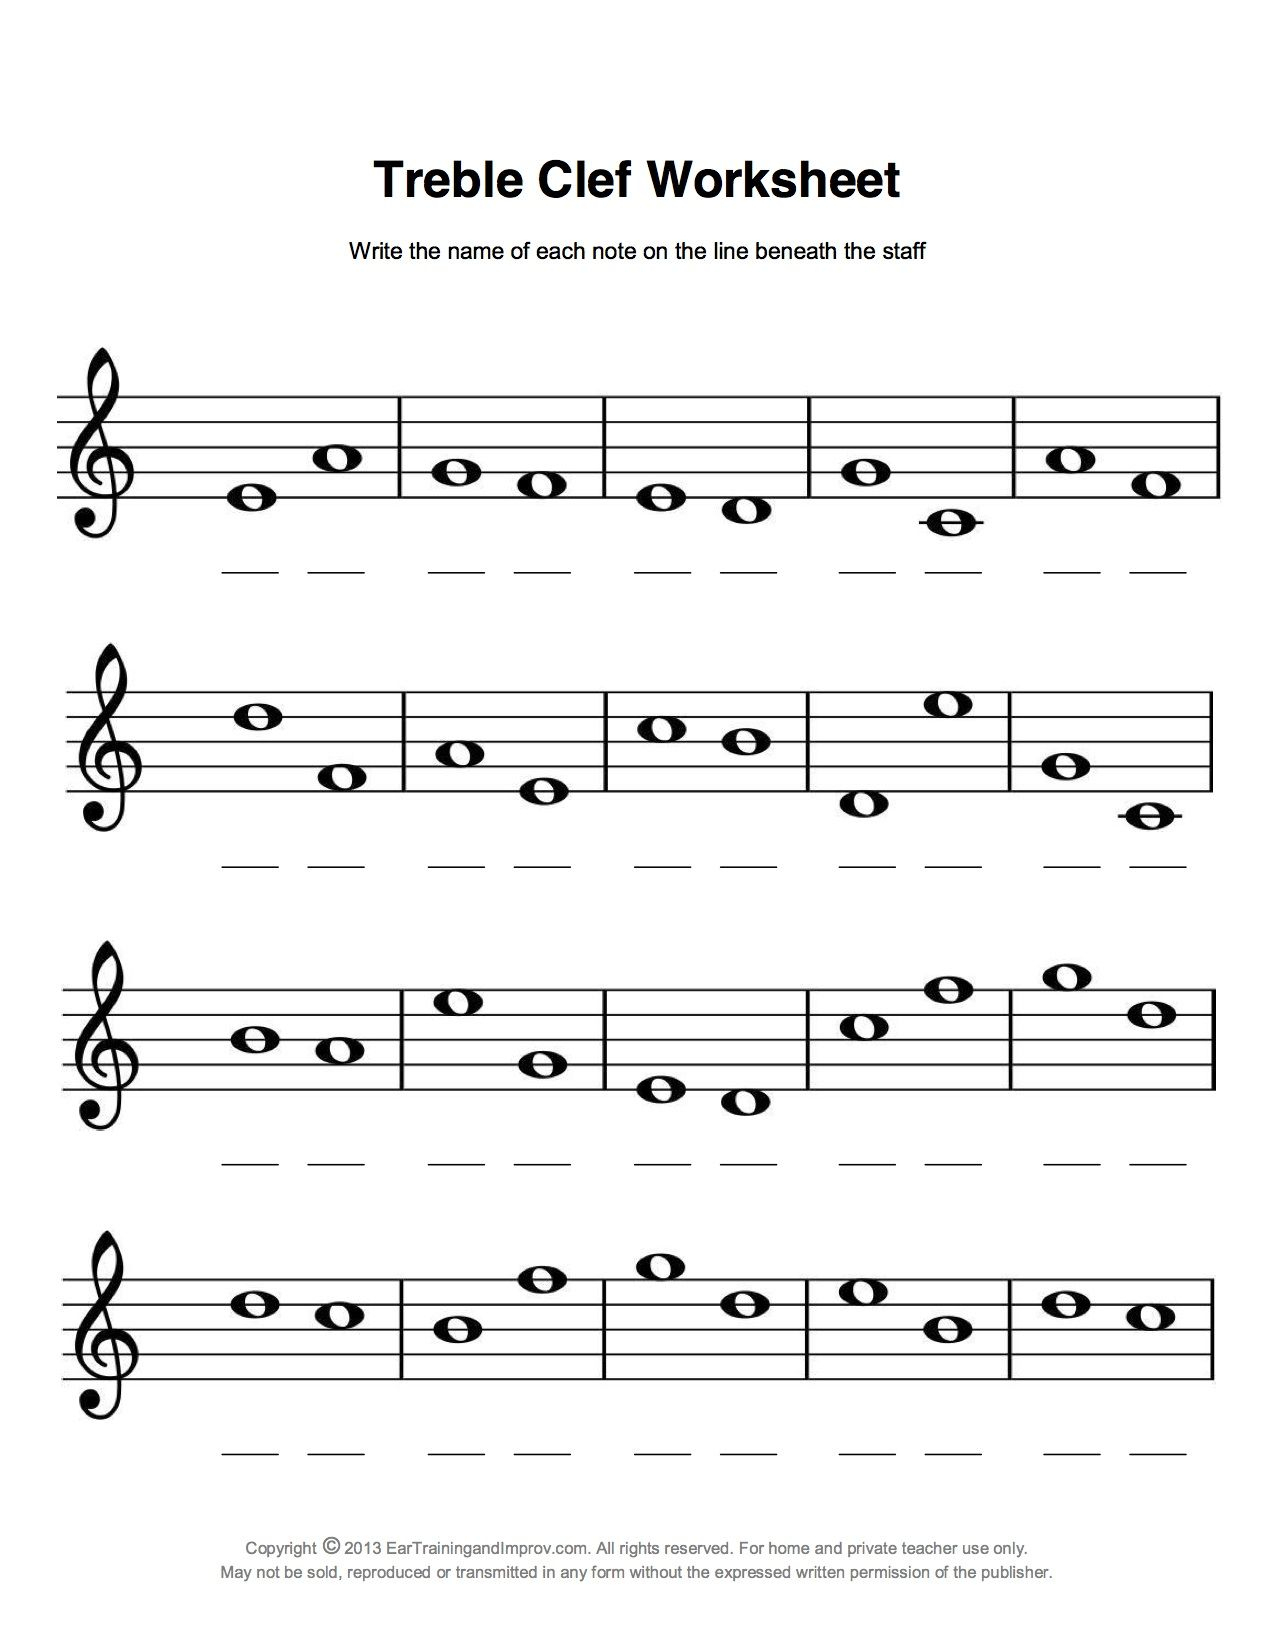 Easy Fun Music Theory | Music Theory | Music, Music Theory | Free Printable Music Theory Worksheets